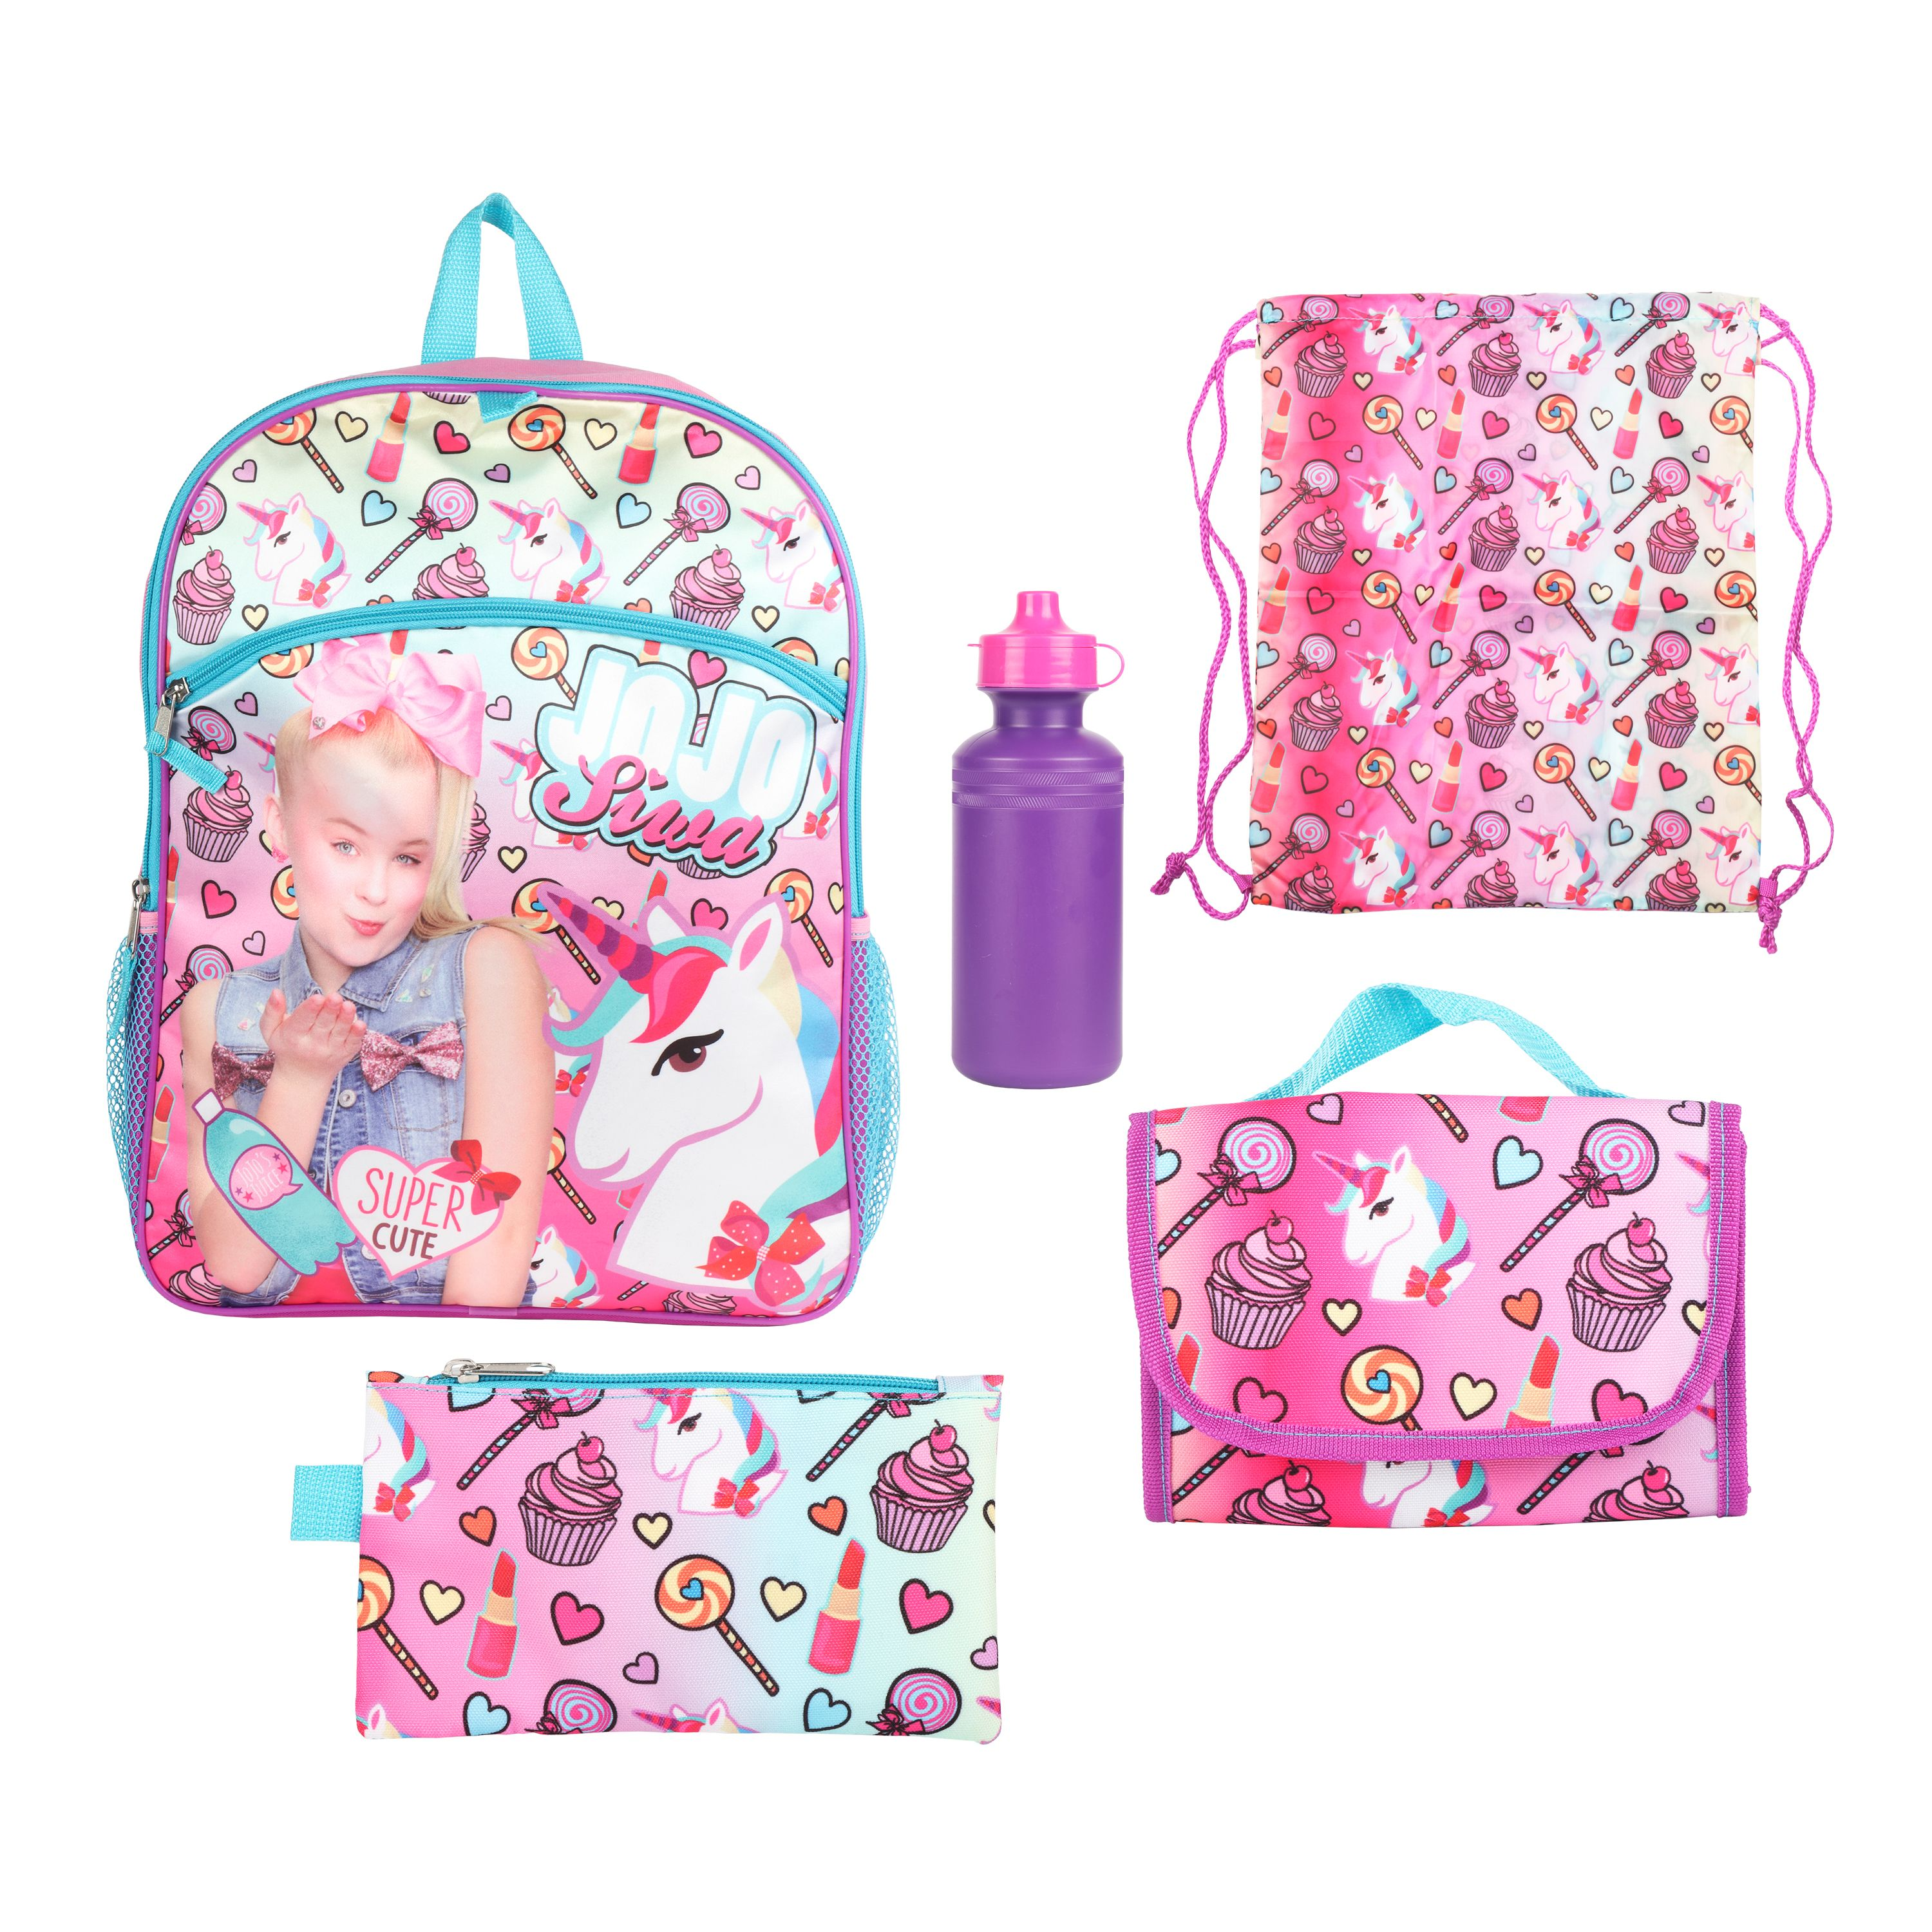 0895abf7e0ae Jojo Siwa - Jojo Siwa 5 PC Backpack Value Set - Walmart.com